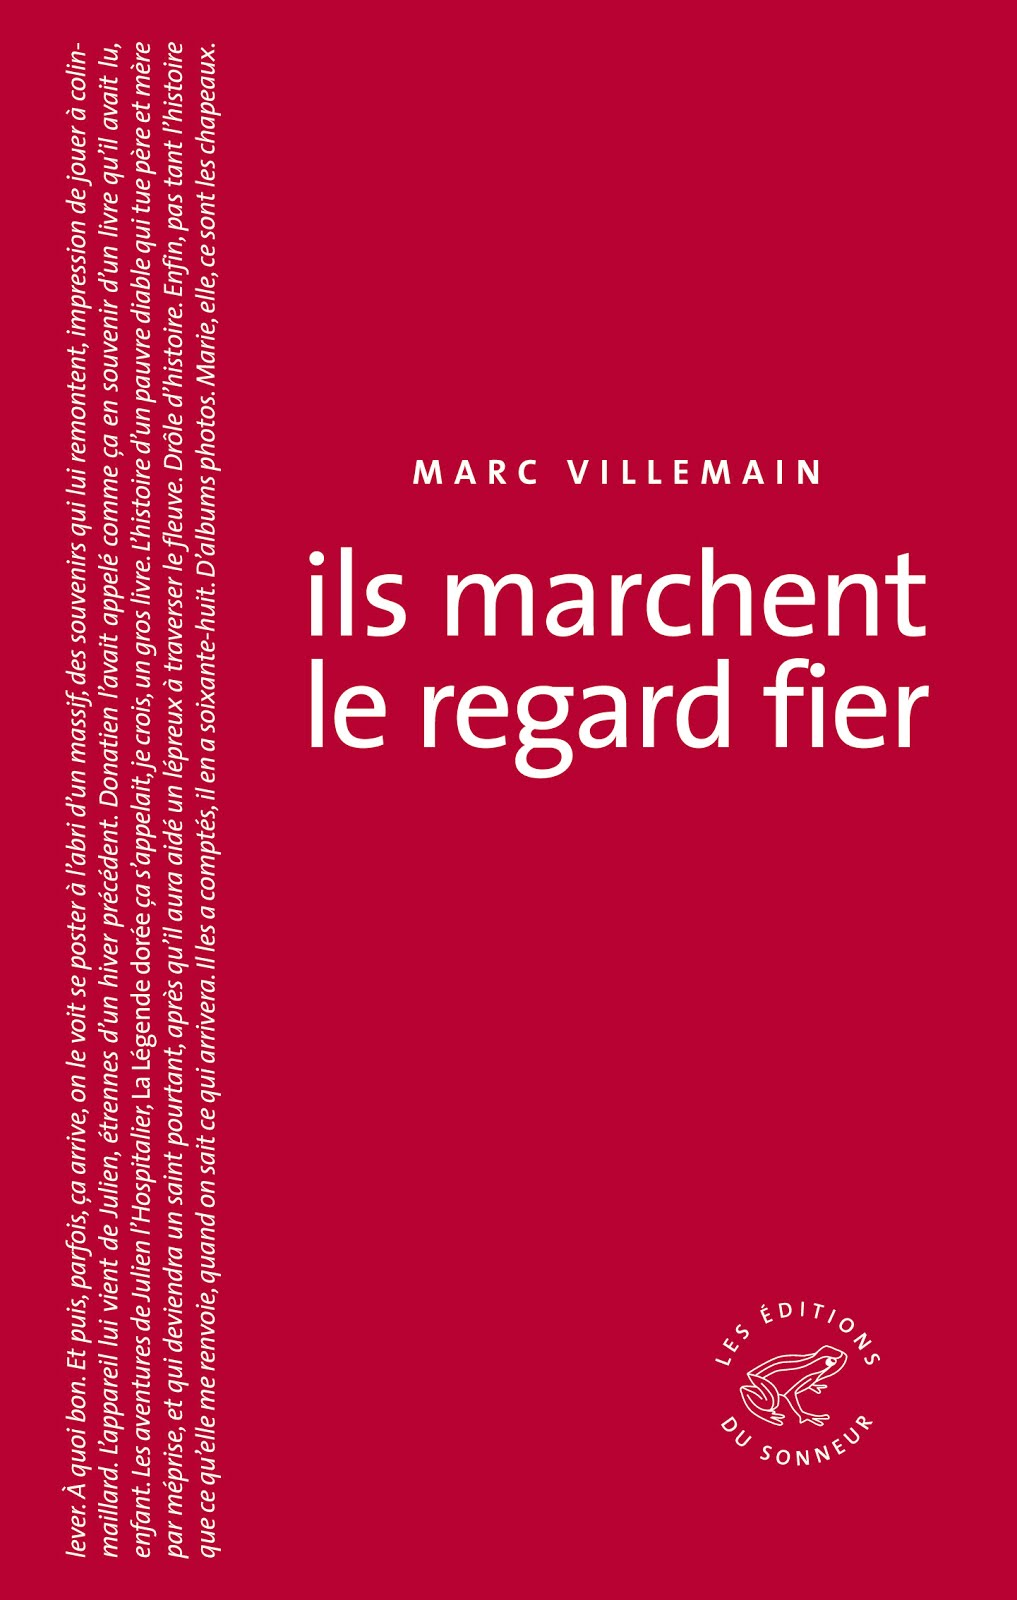 Marc Villemain, Ils marchent le regard fier